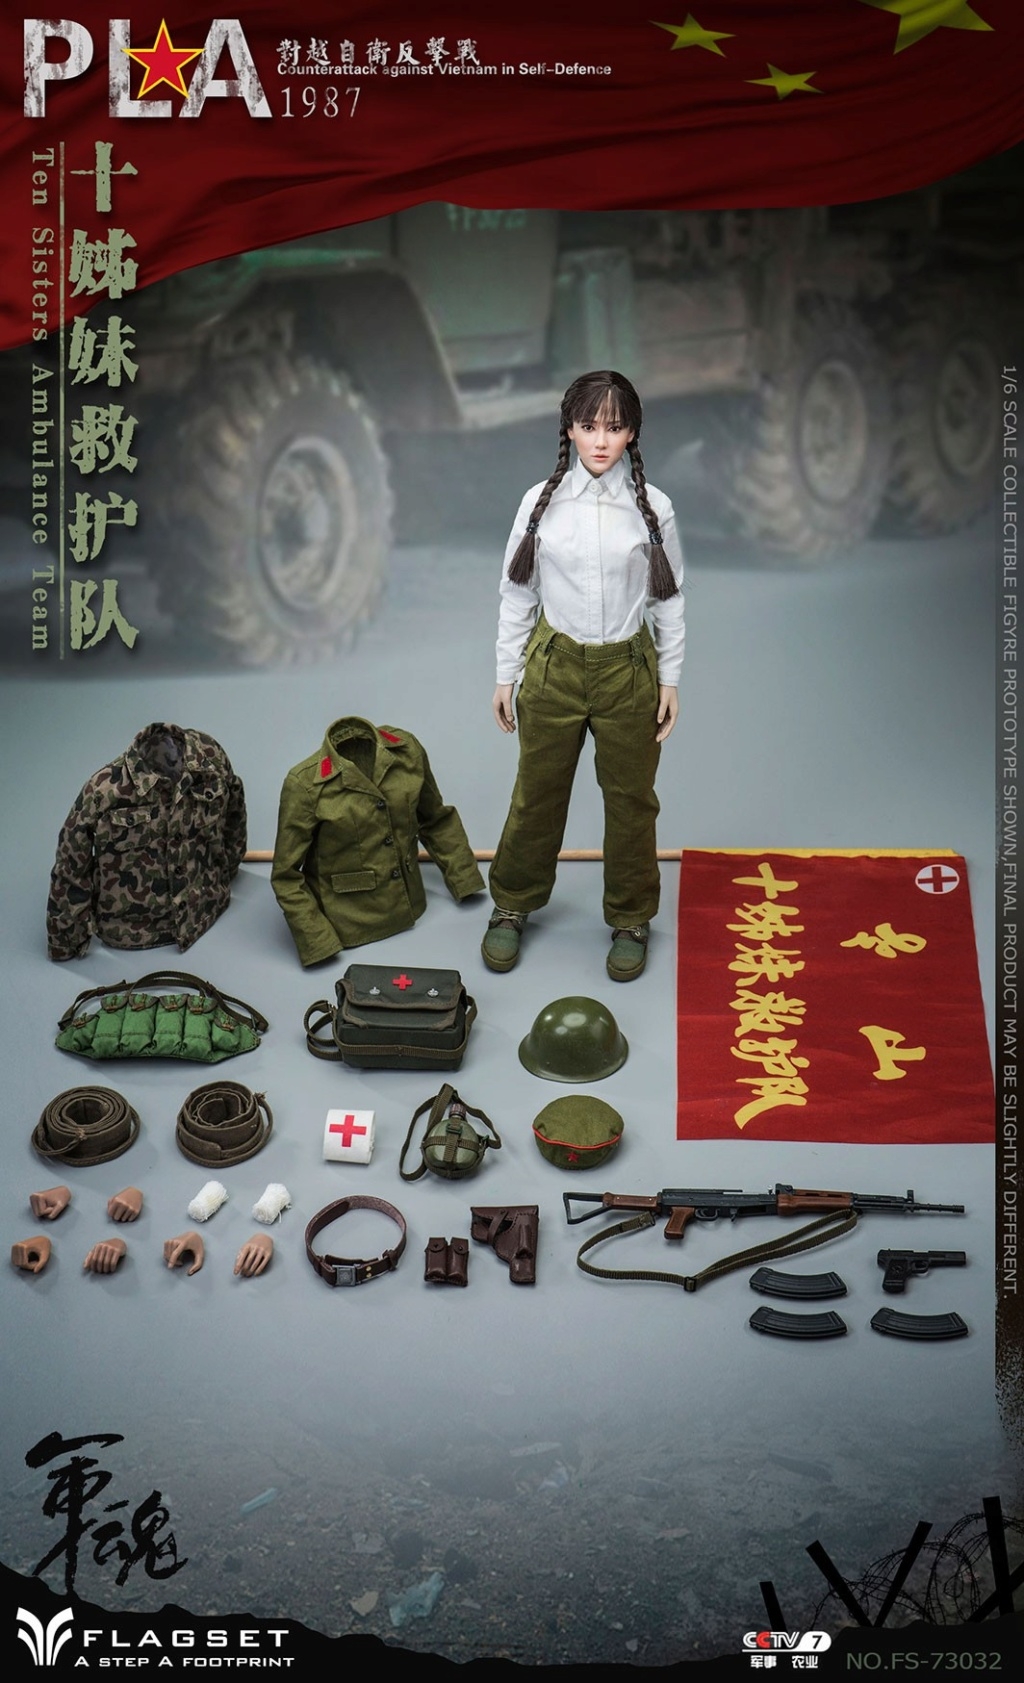 CounterAttack - NEW PRODUCT: Flagset: 1/6 counterattack against Vietnam-female soldiers of the ten sisters rescue team of the Chinese People's Liberation Army (FS73032#) 06541610